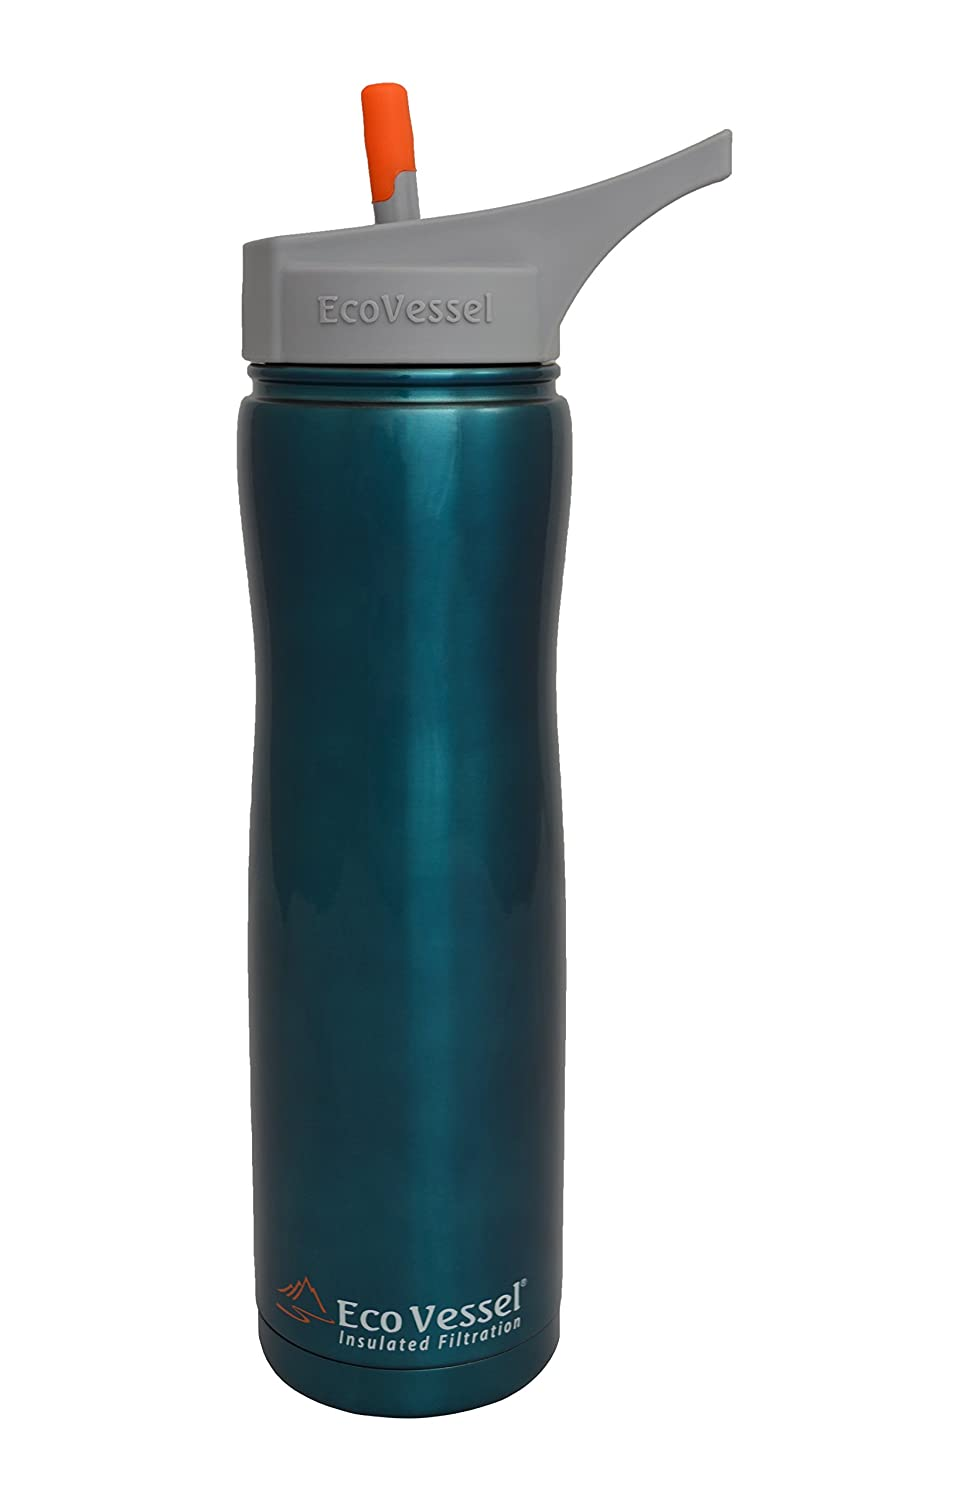 Eco Vessel Insulated Portable Water Filtration Bottle